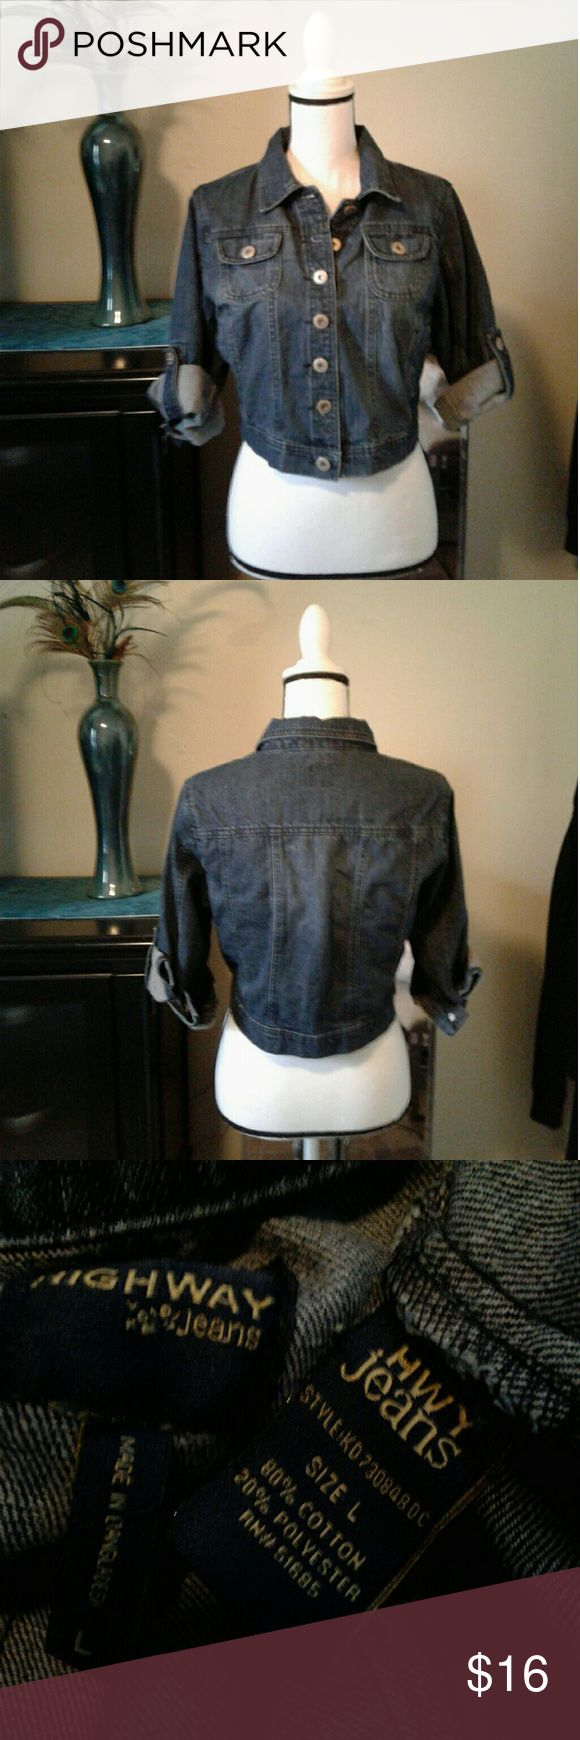 "Crop Jean jacket Women's like new Highway Jeans dark wash crop jean jacket with button roll cuffs size Large. 2 button flap breast pockets and 2 side pockets.  Measurements Chest 19"" length 17"" sleeve 18"" unrolled. Thanks for looking Bundle to save!! Highway Jeans Jackets & Coats Jean Jackets"